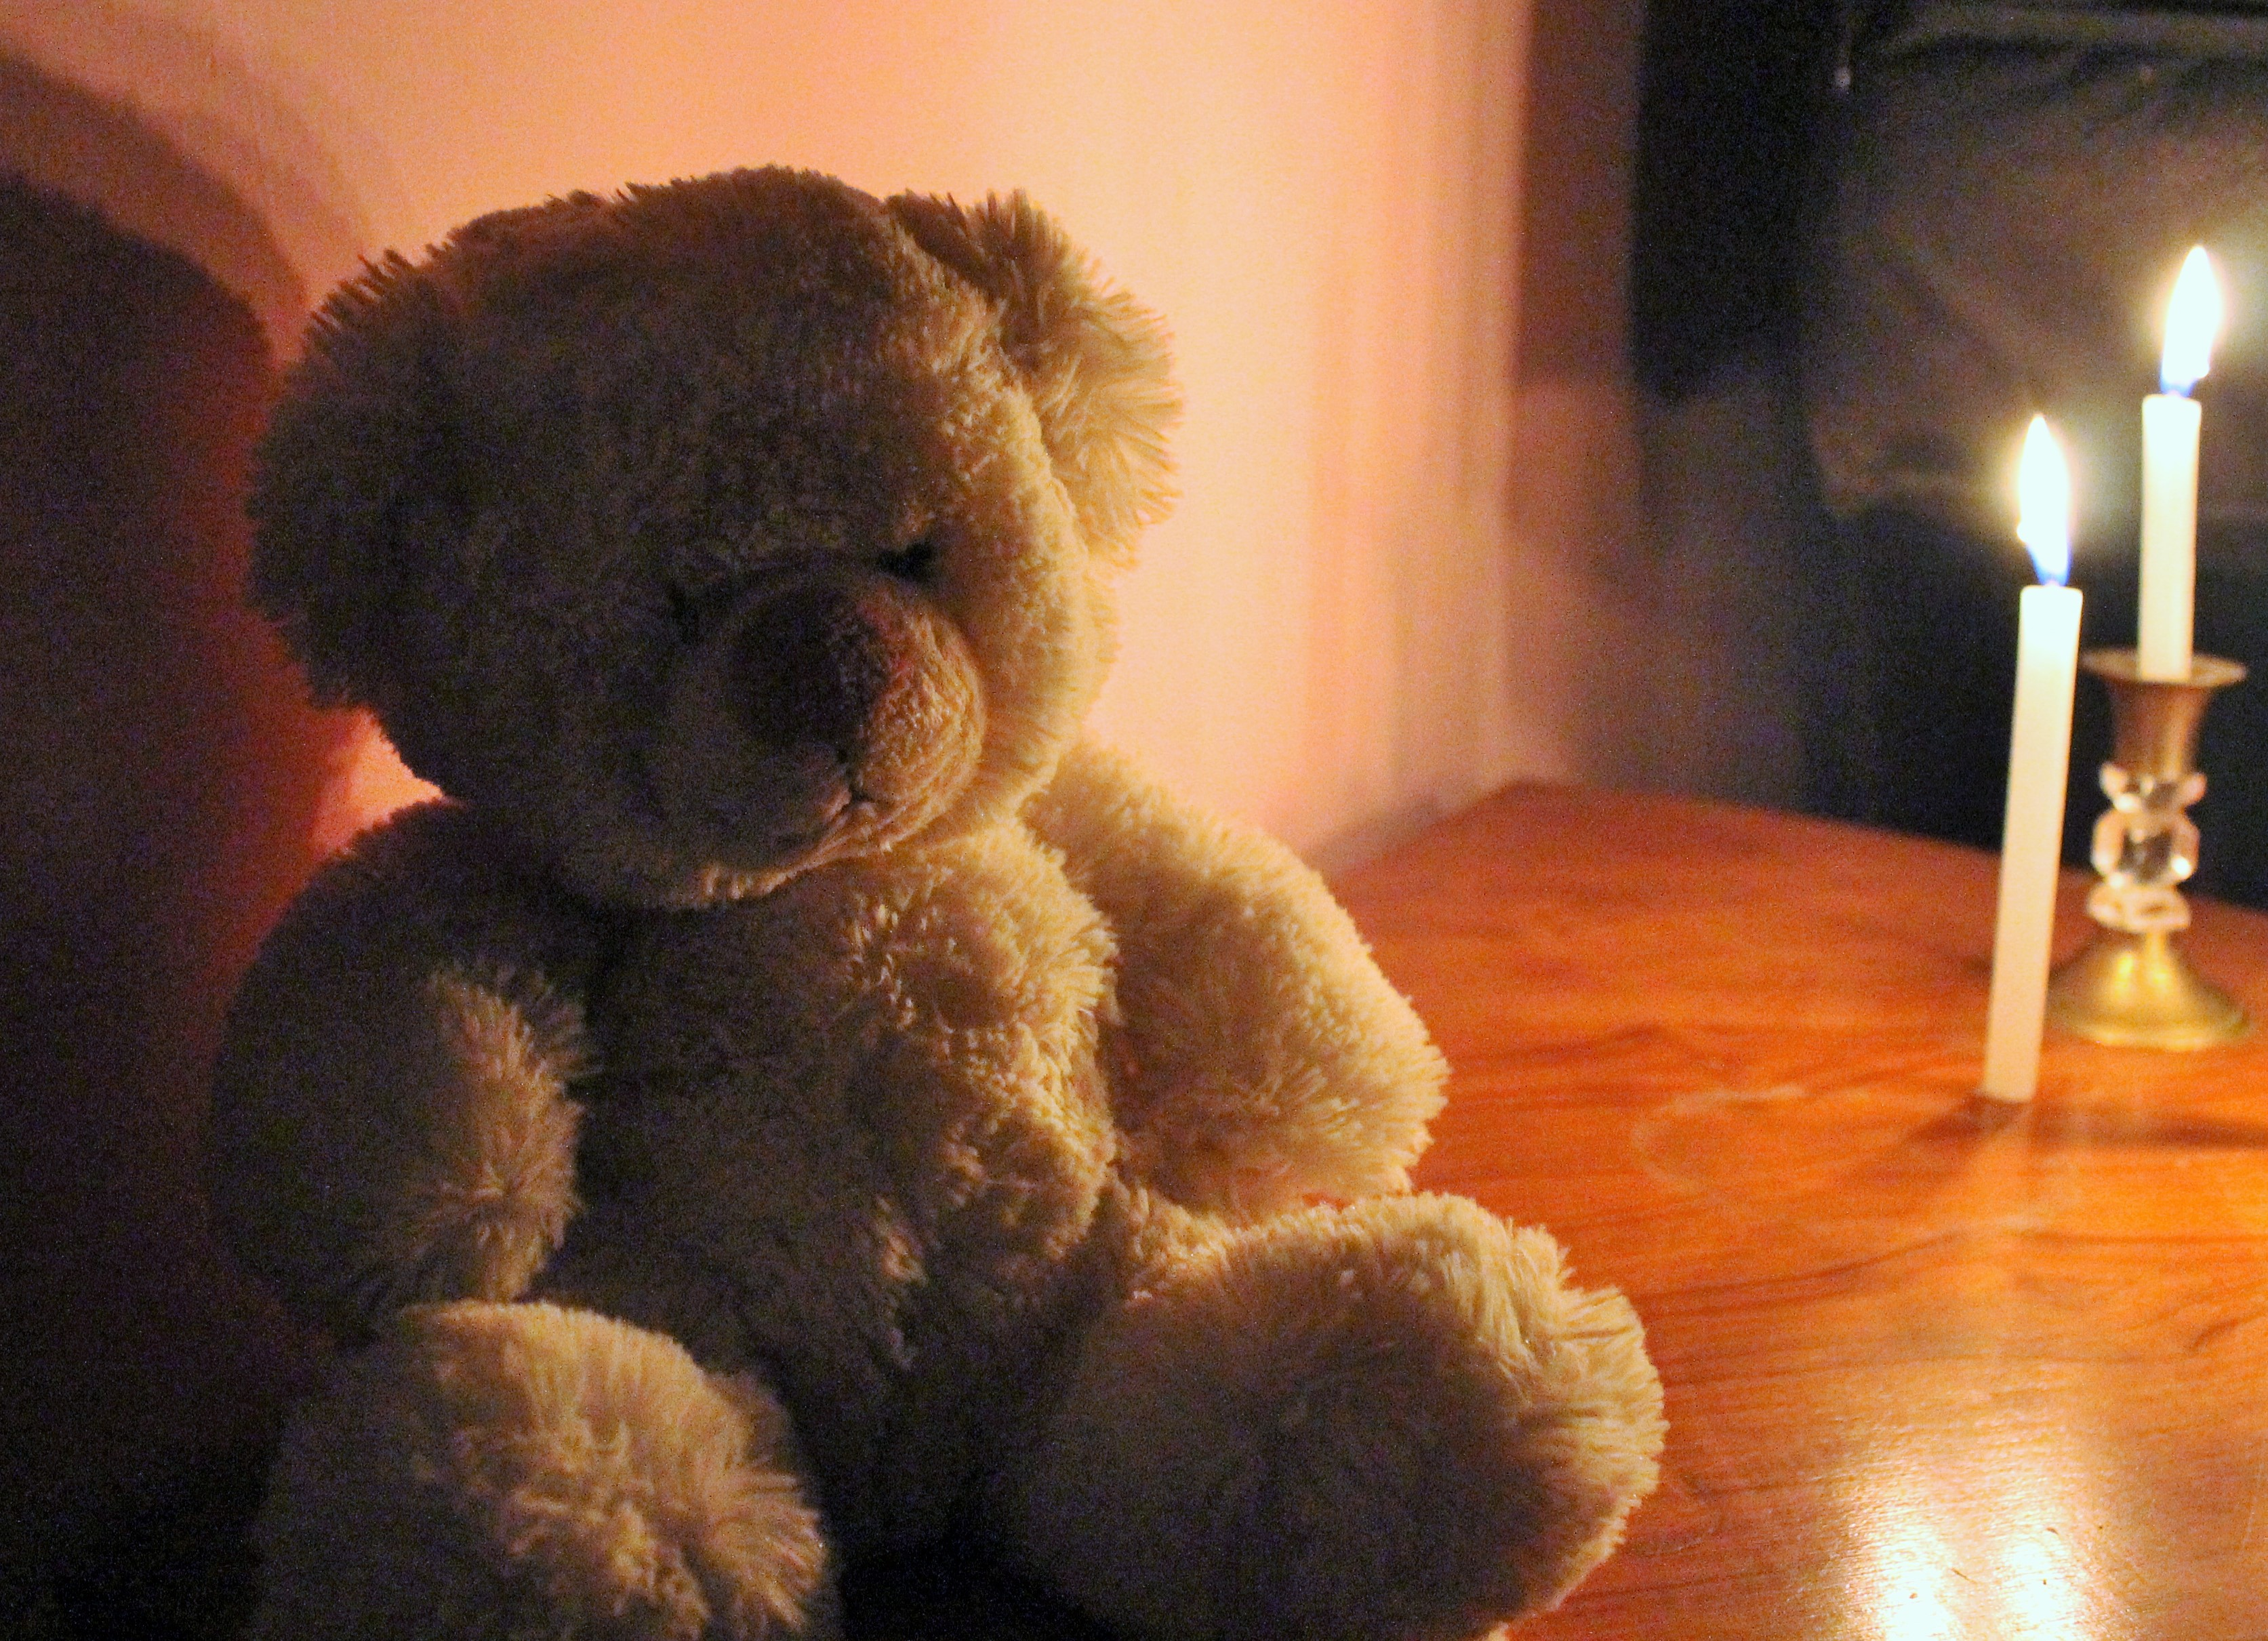 Teddy in the light, sofspics